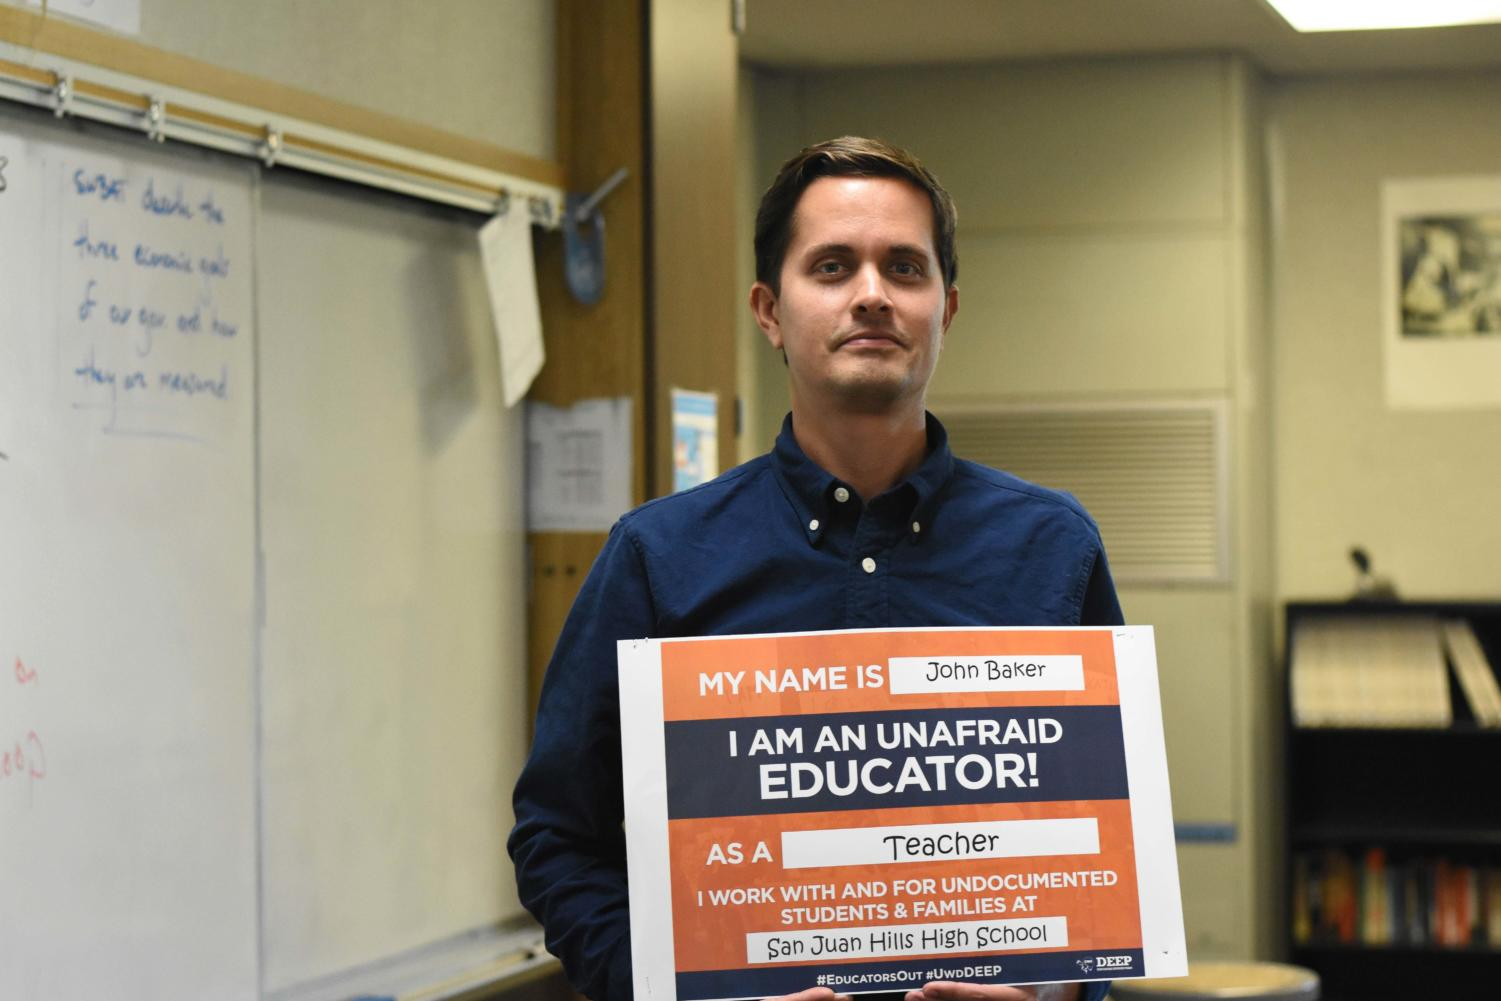 History tecaher, John Baker, holds one of the many posters that are all around teacher's rooms at SJHHS. By stating that the teachers are unafraid to educate undocumented students, it is a hope that DACA recipients will feel comfortable and accepted at SJHHS.